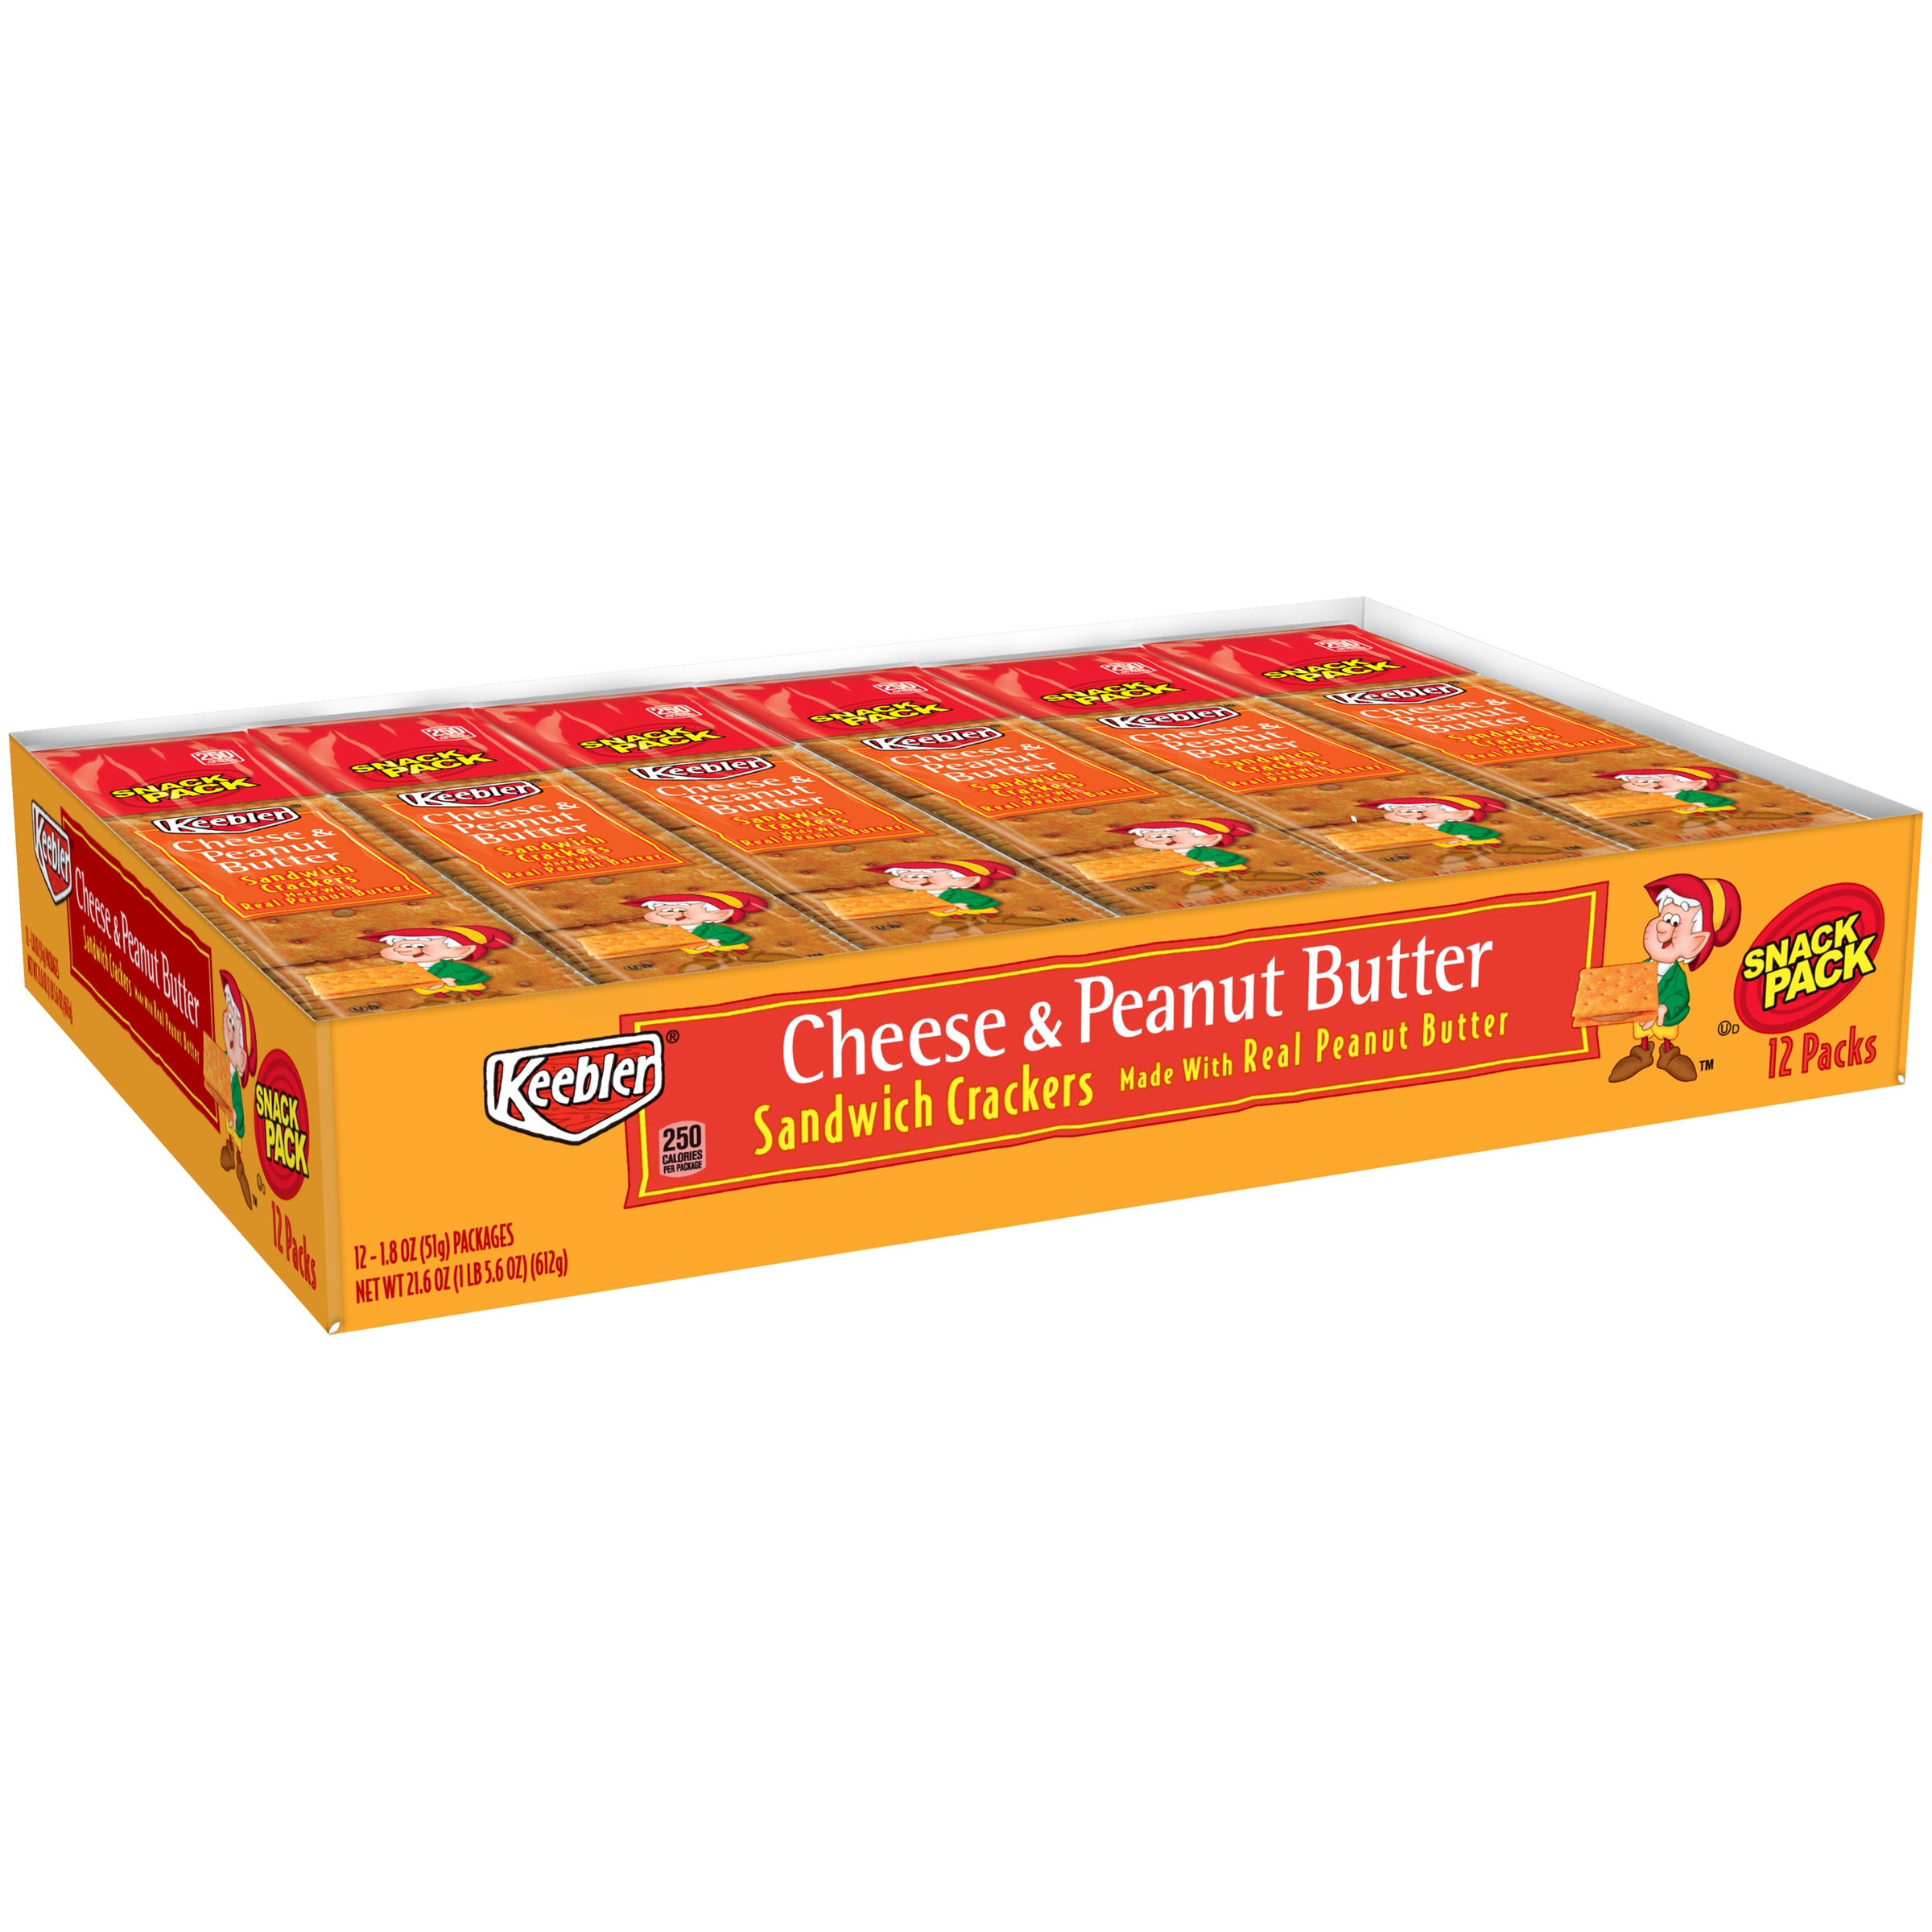 Keebler Cheese & Peanut Butter Sandwich Crackers Snack Pack, 1.8 Oz., 12 Count